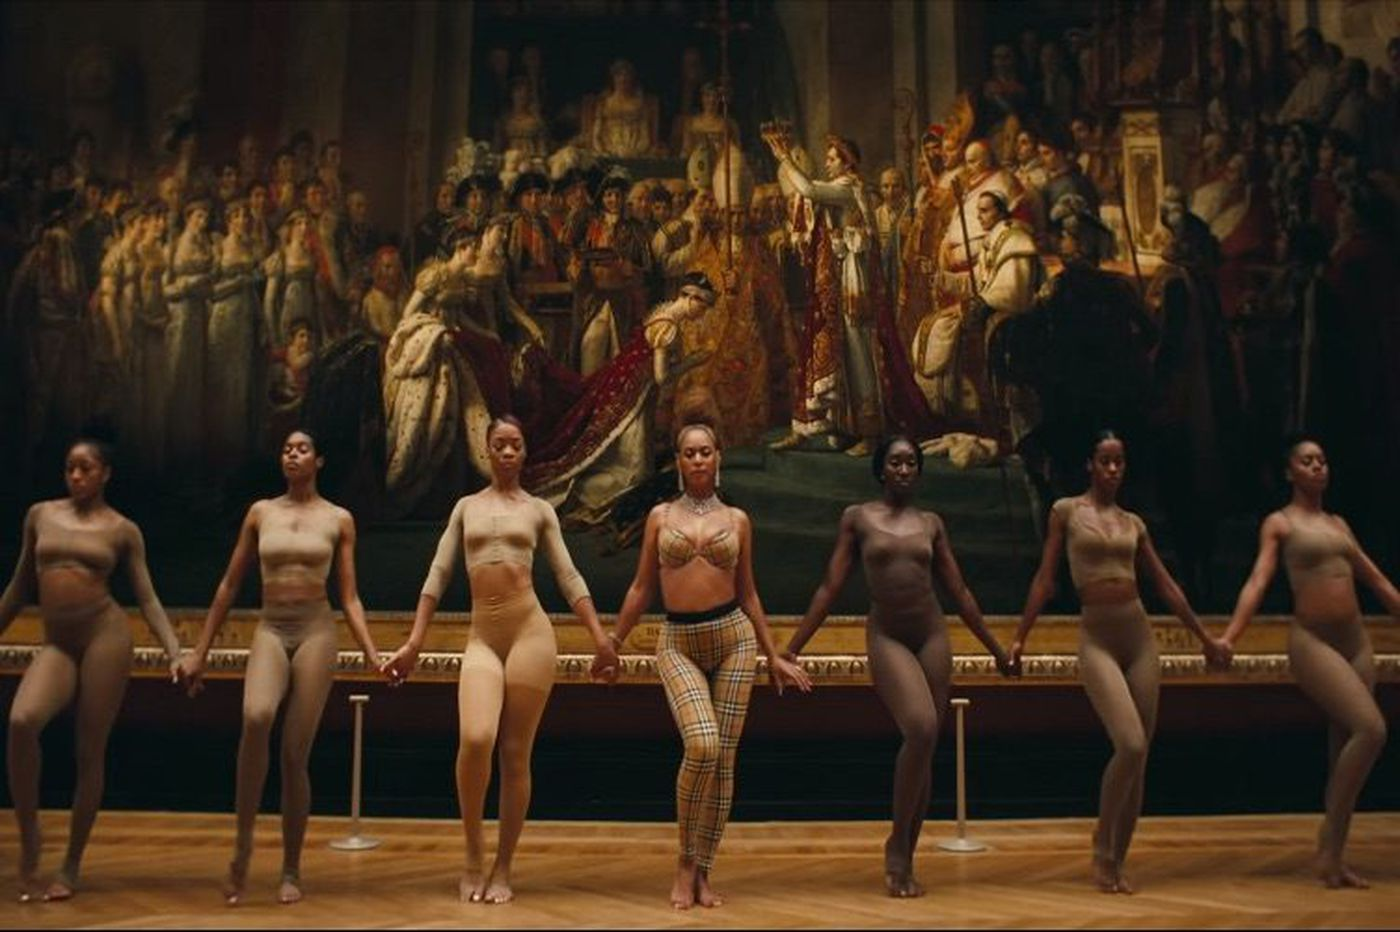 UArts alums featured in Beyoncé and Jay-Z's new music video